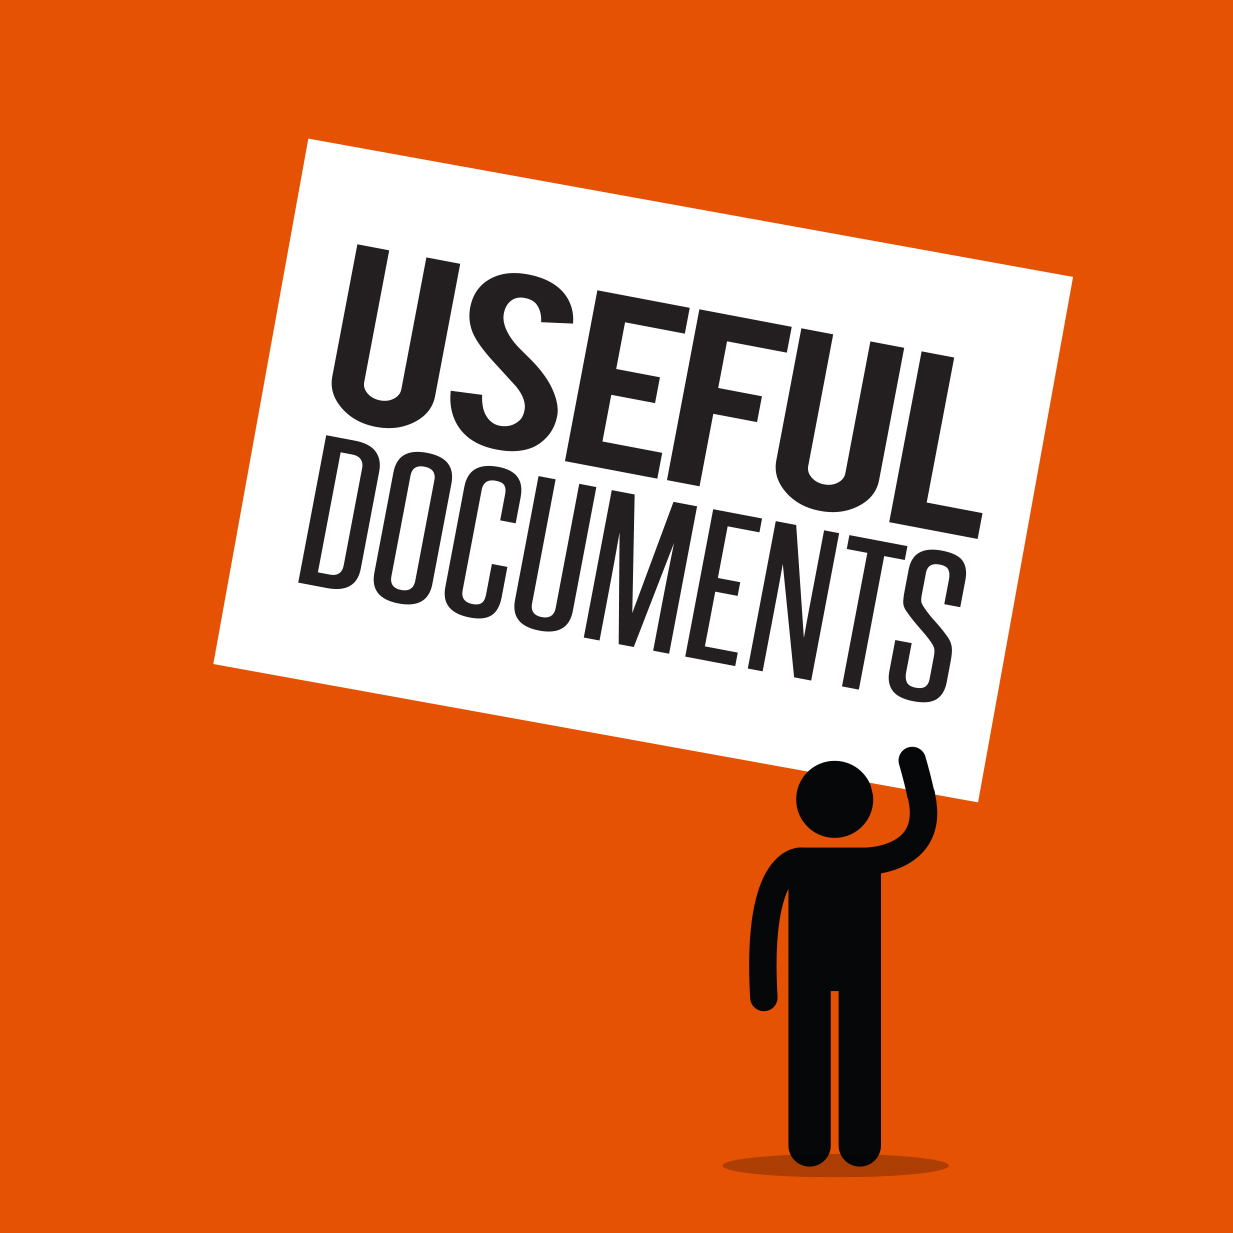 Web Button: Useful Documents